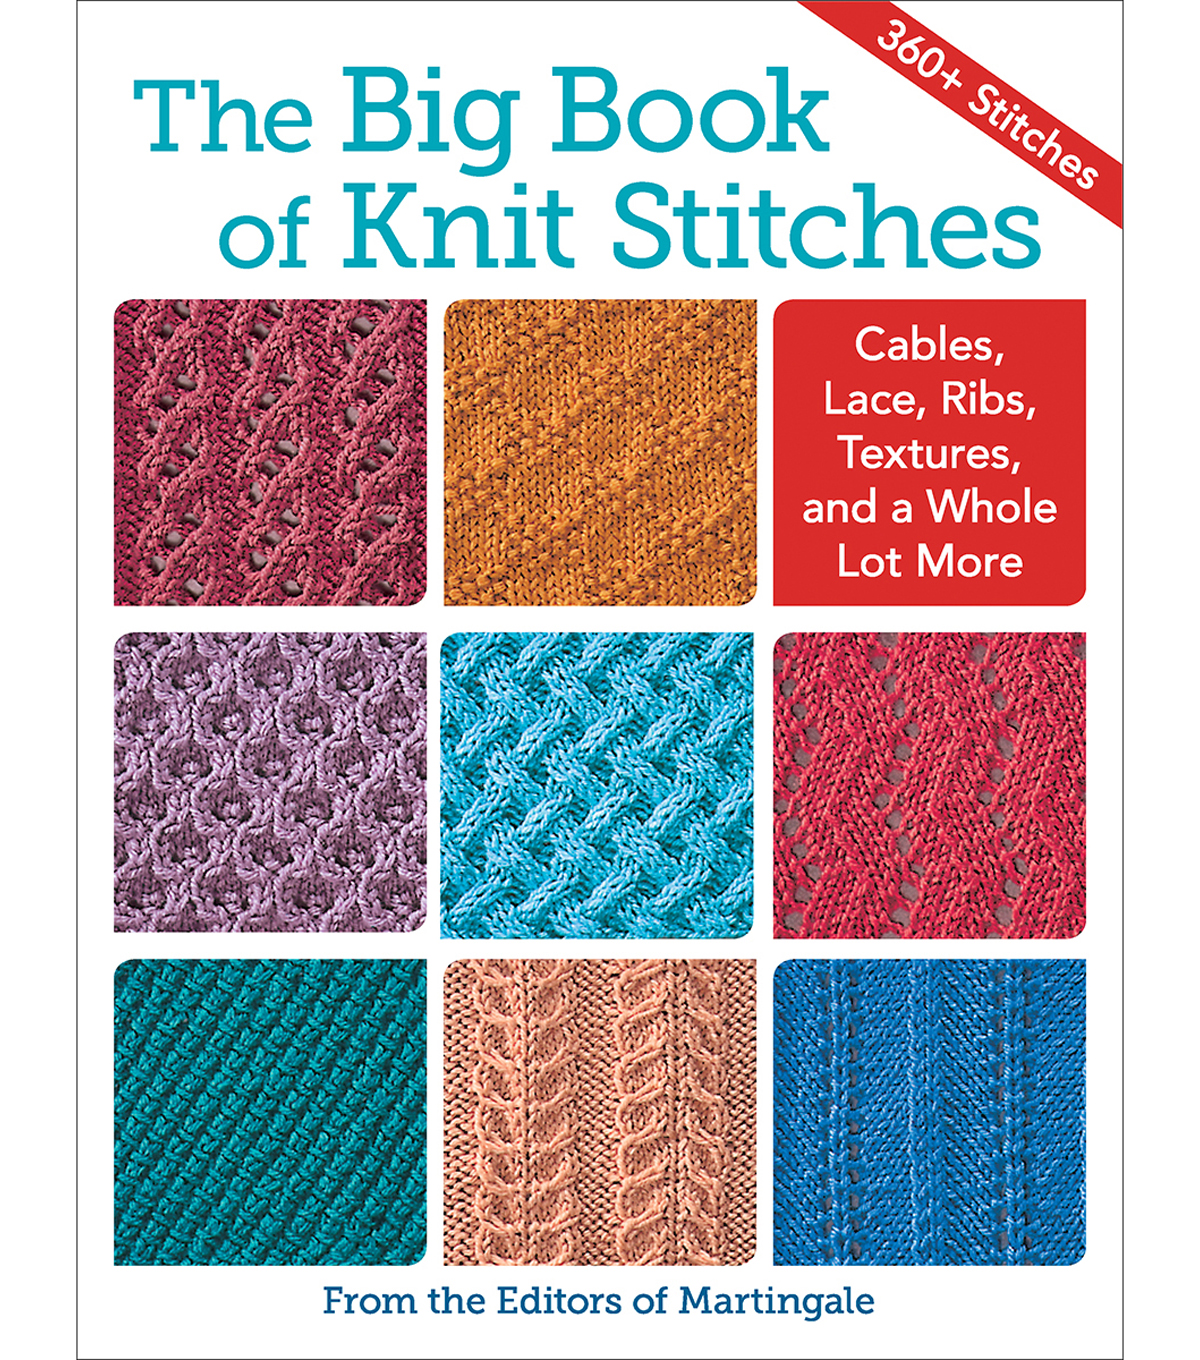 Martingale The Big Book of Knit Stitches Book